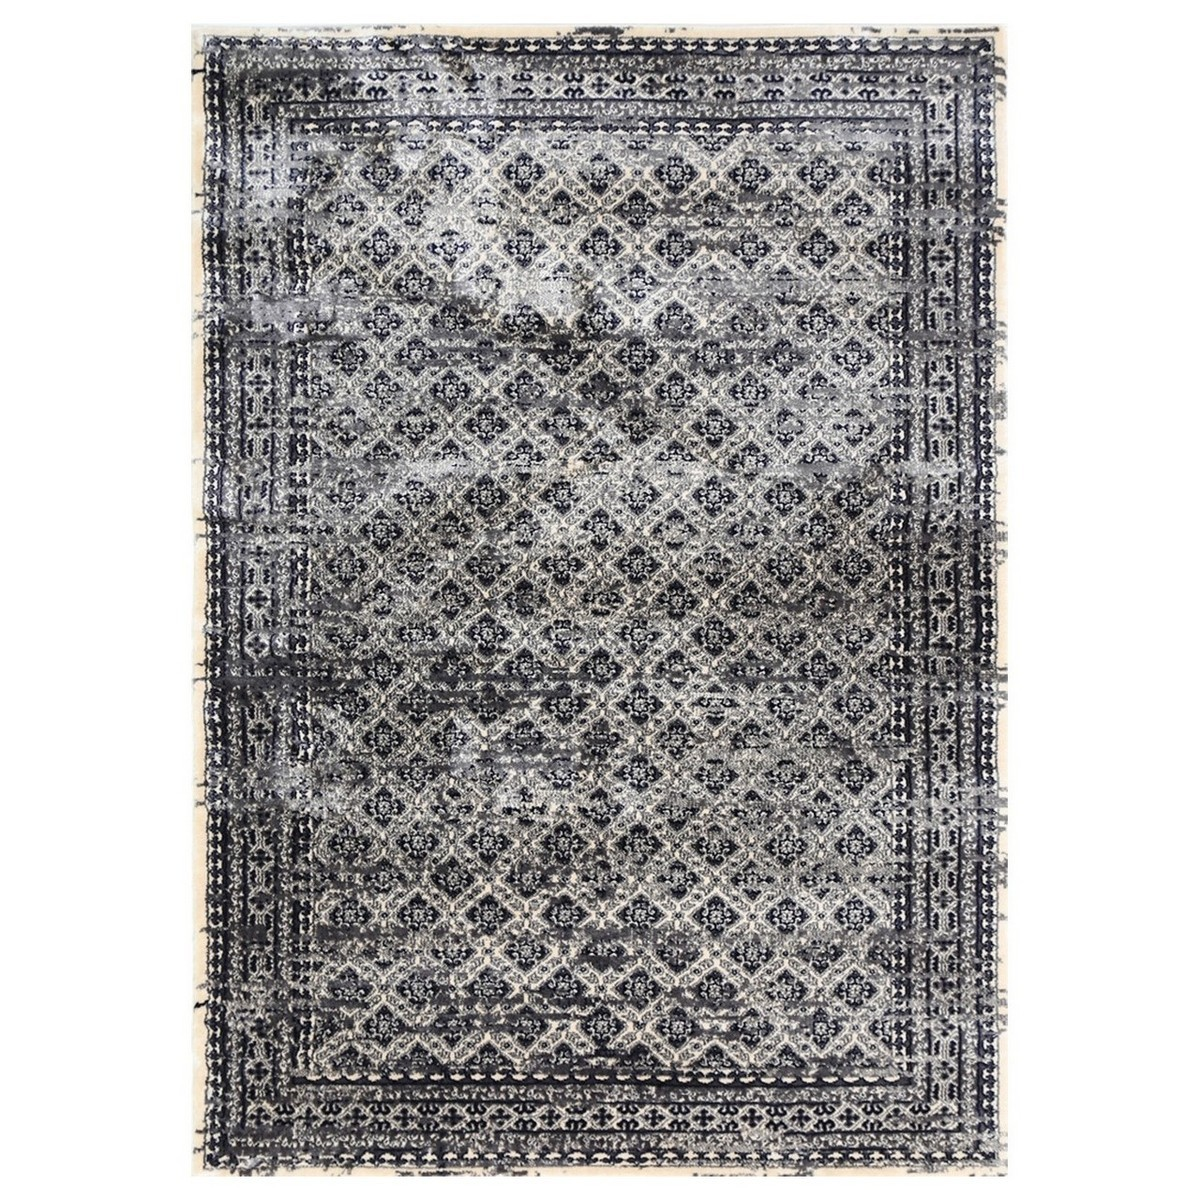 Artifact Hester Distressed Oriental Rug, 120x170cm